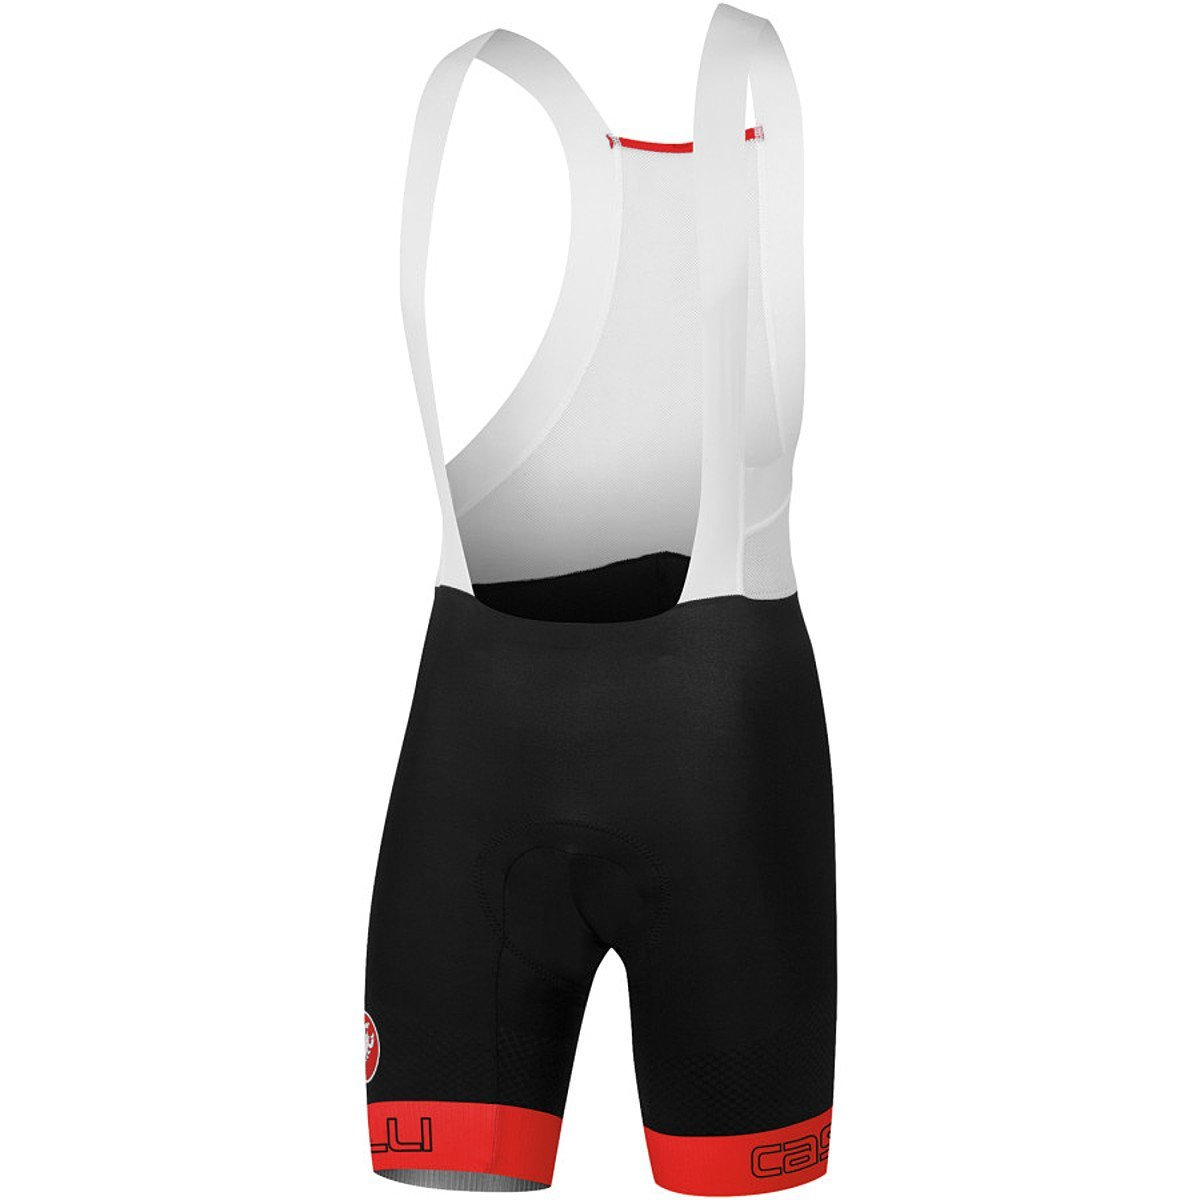 Castelli Body Paint 2.0 Cycling Bib Short